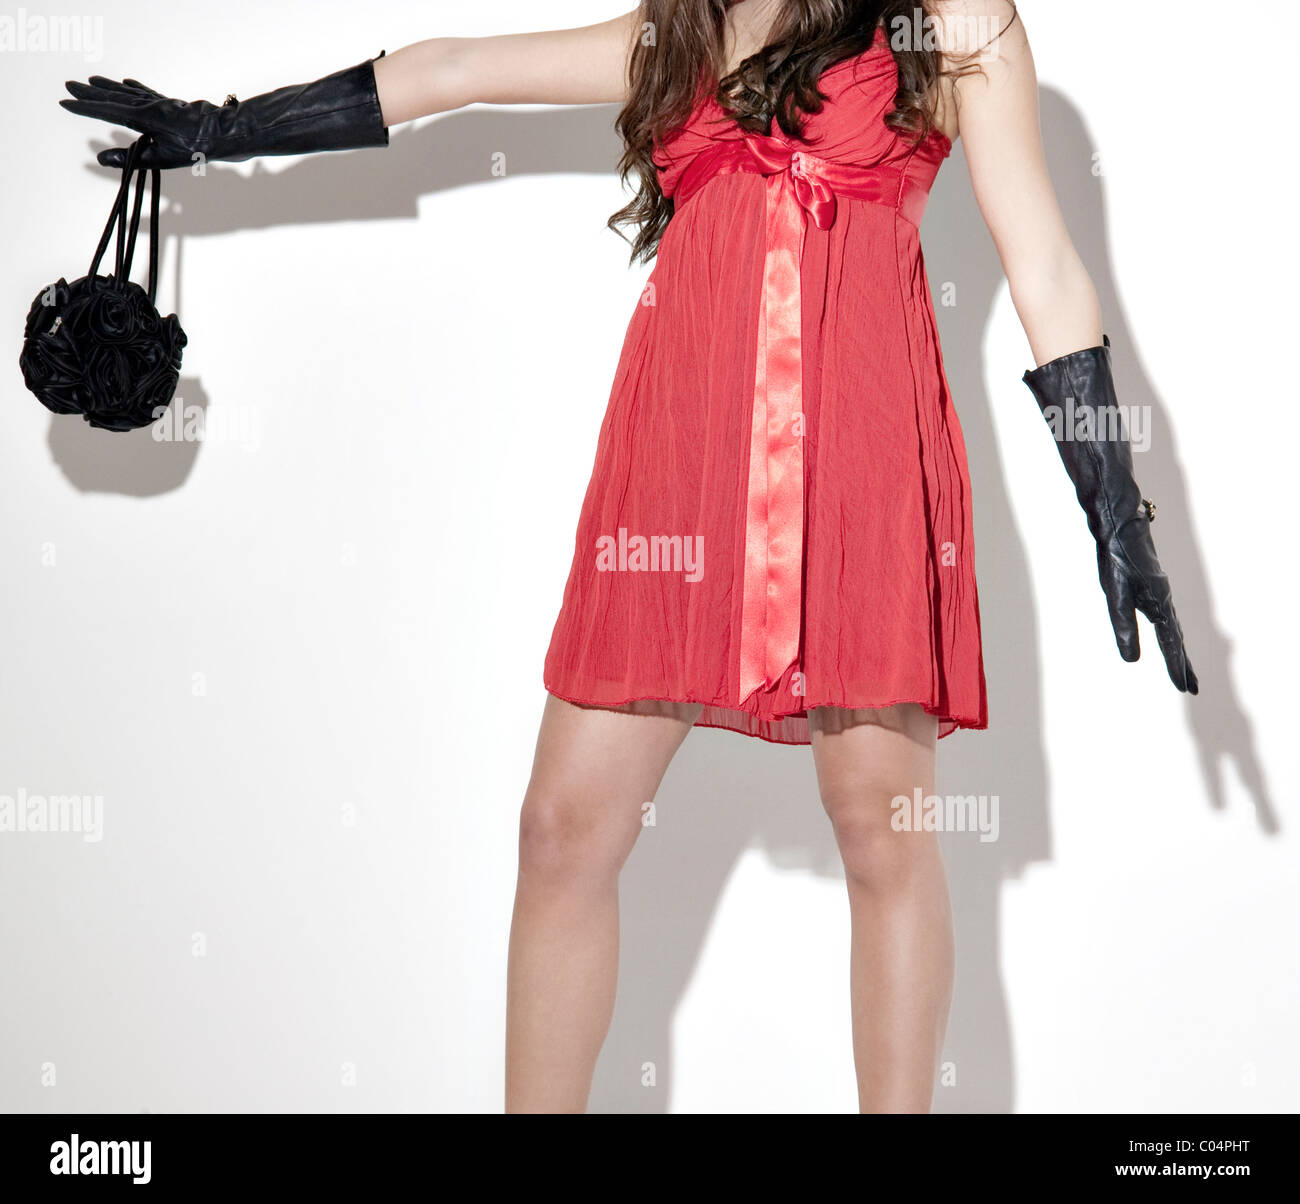 Woman in red dress back gloves and black handbag Stock Photo